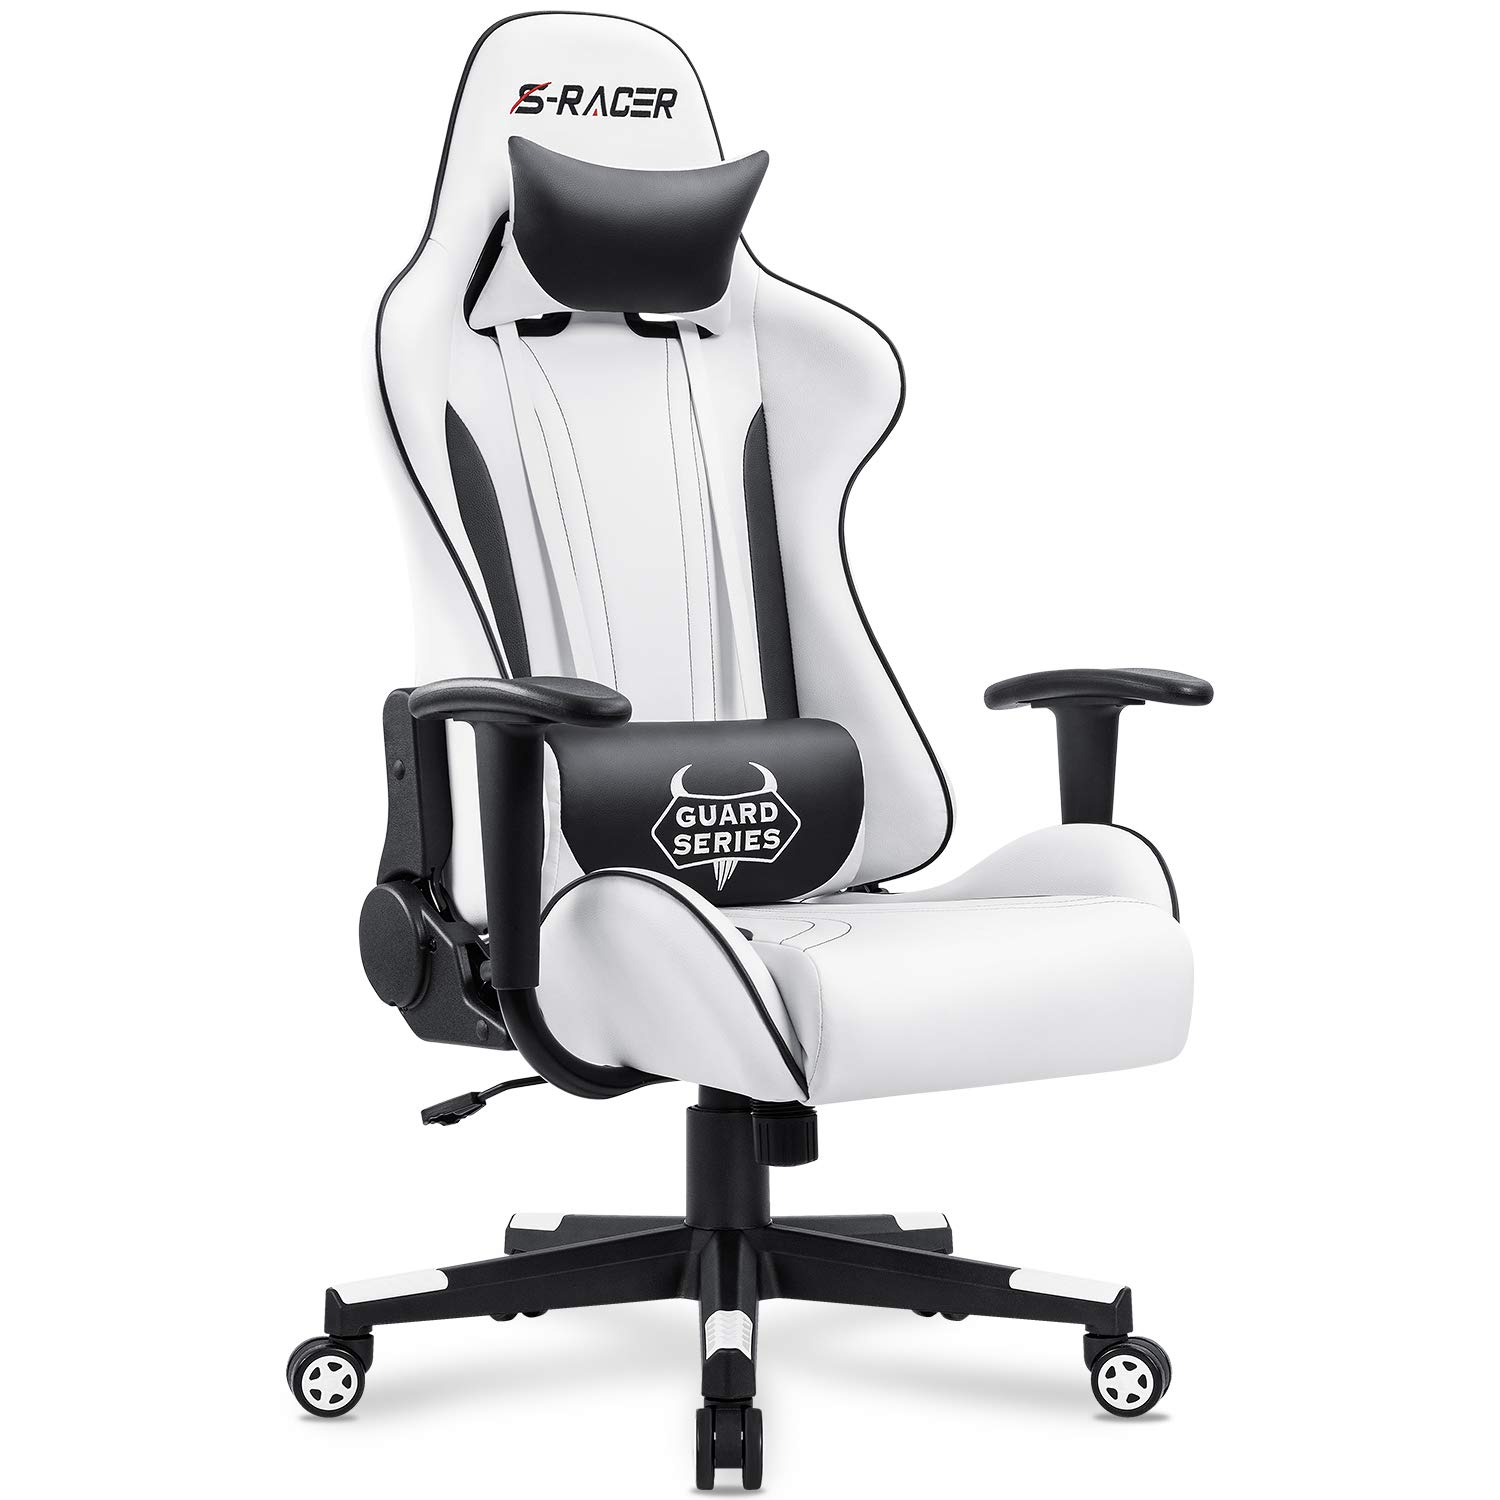 Homall Gaming Chair Office Chair High Back Racing Computer Desk Chair PU Leather Chair Executive and Ergonomic Swivel Chair with Headrest and Lumbar Support (White)